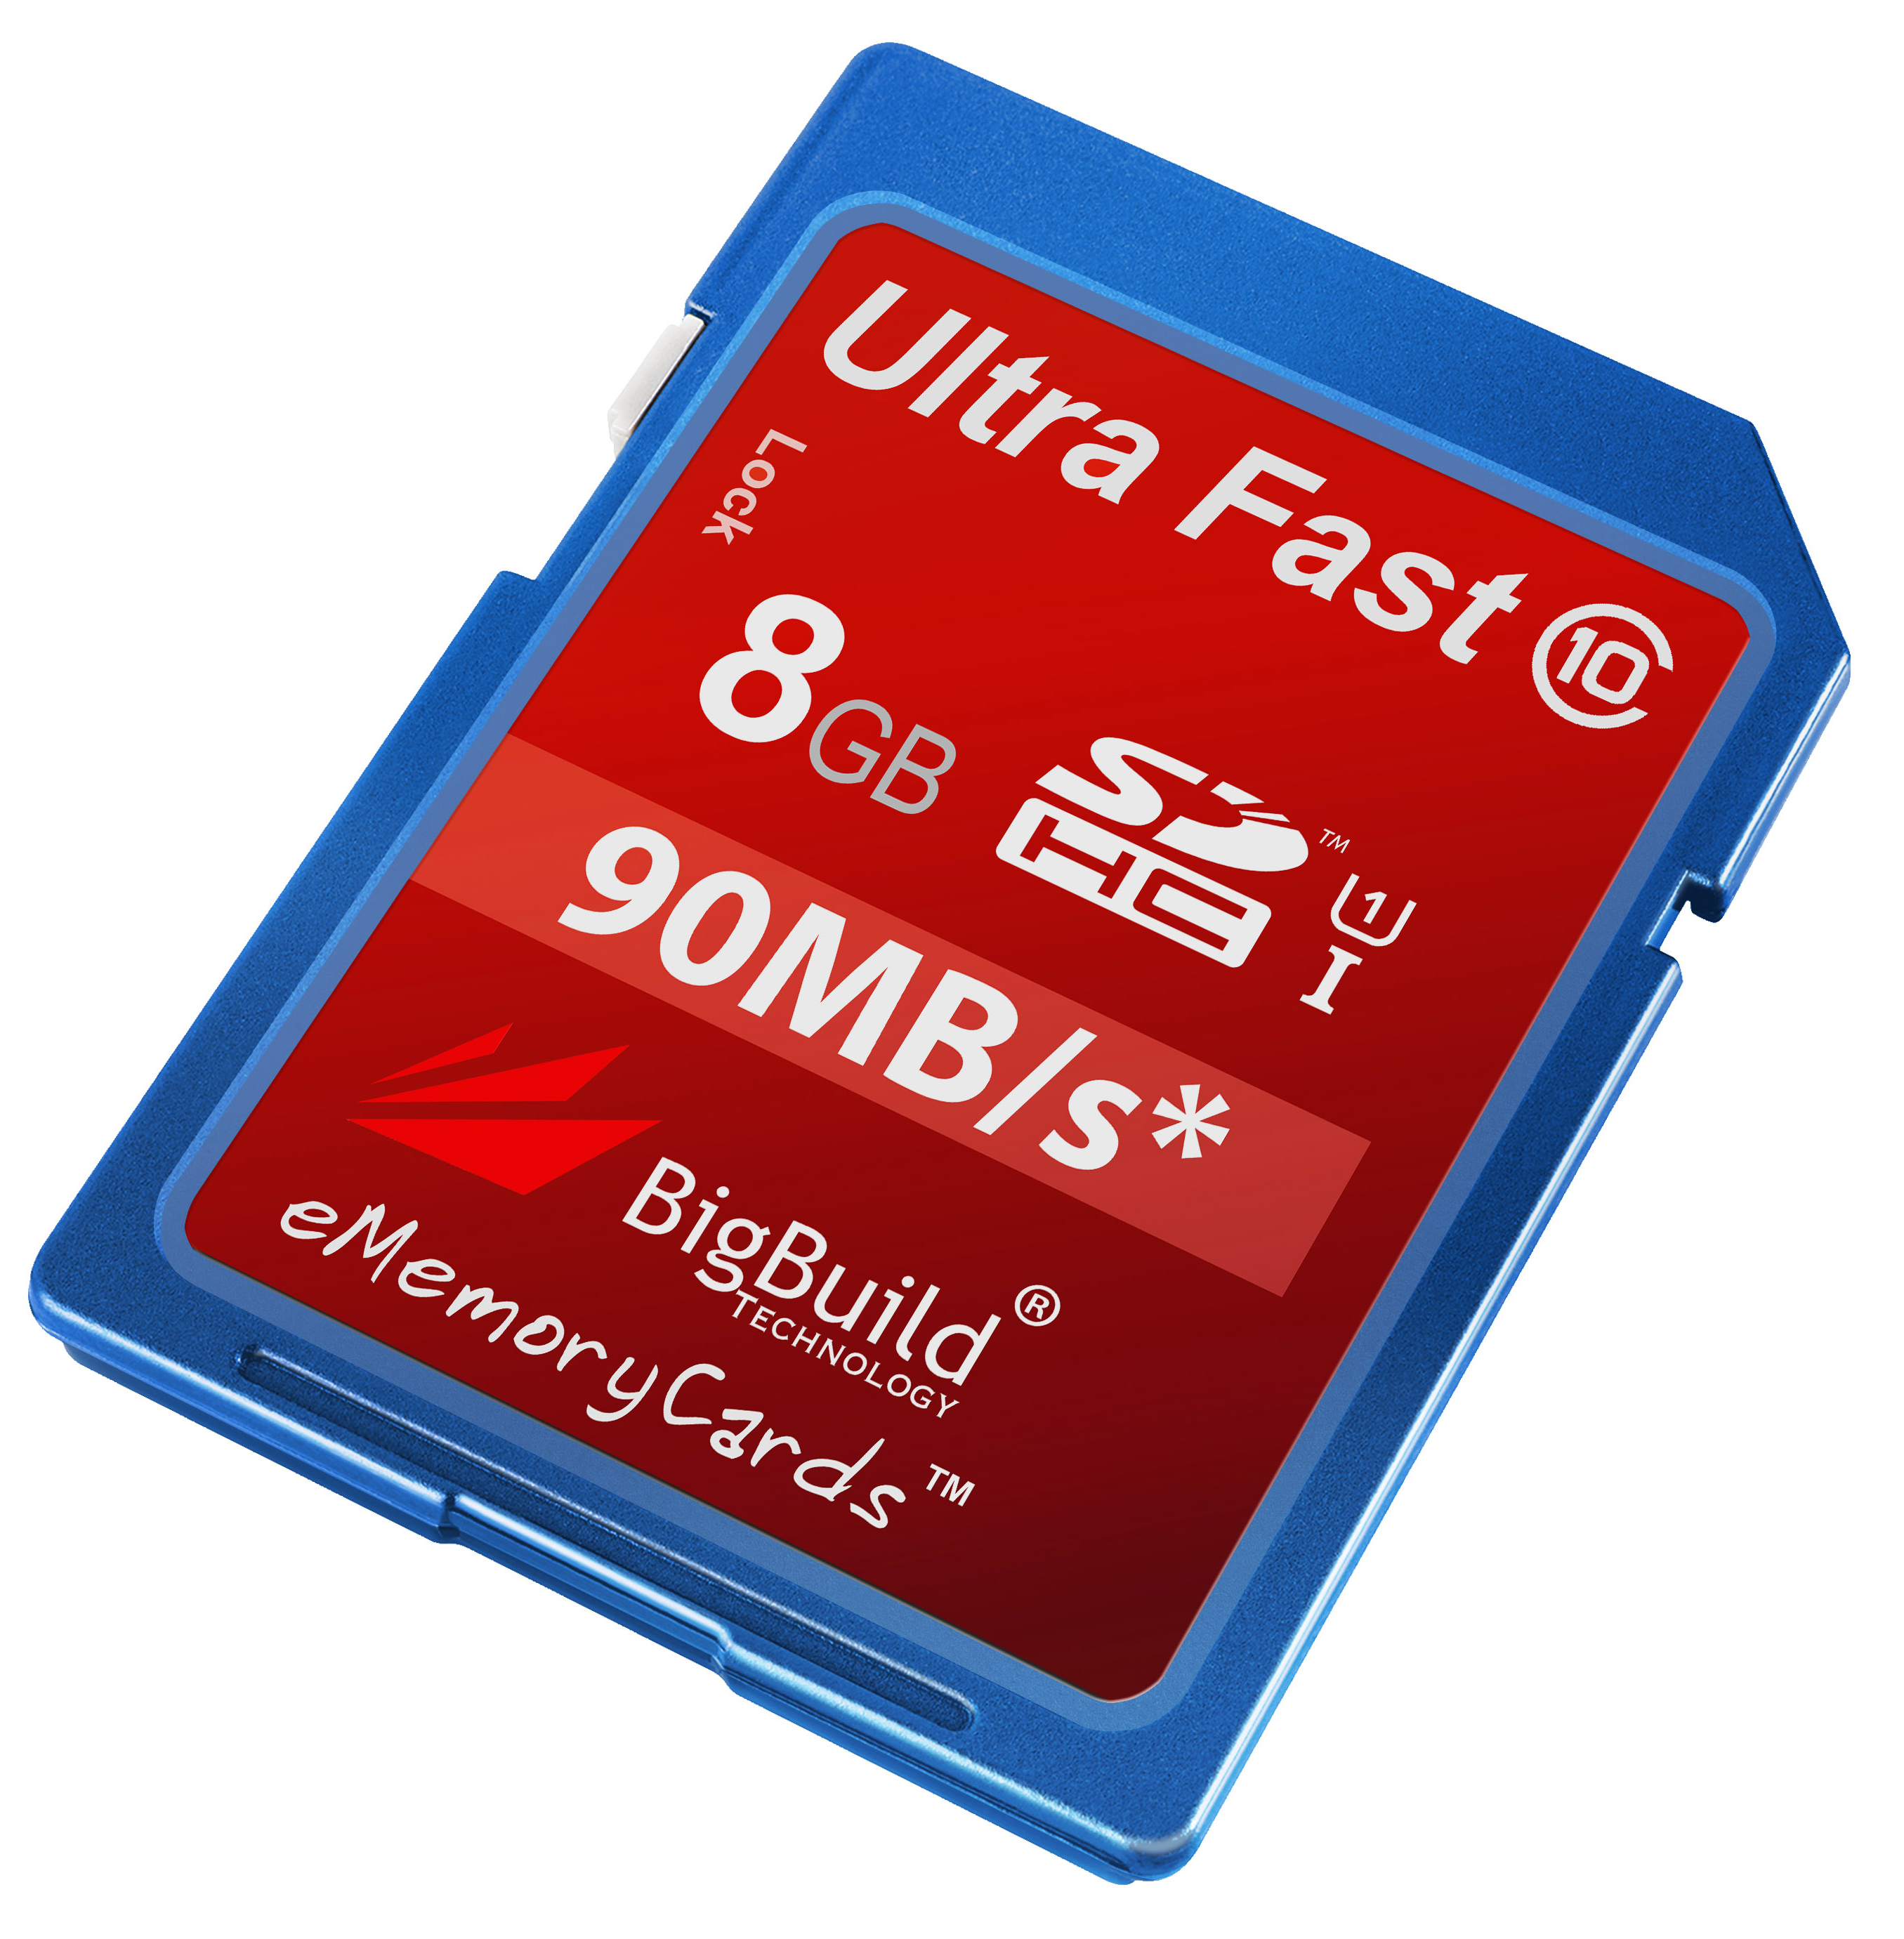 8GB Memory card for Sony HDR CX110E CamcorderClass 10 90MB//s SD SDHC New UK